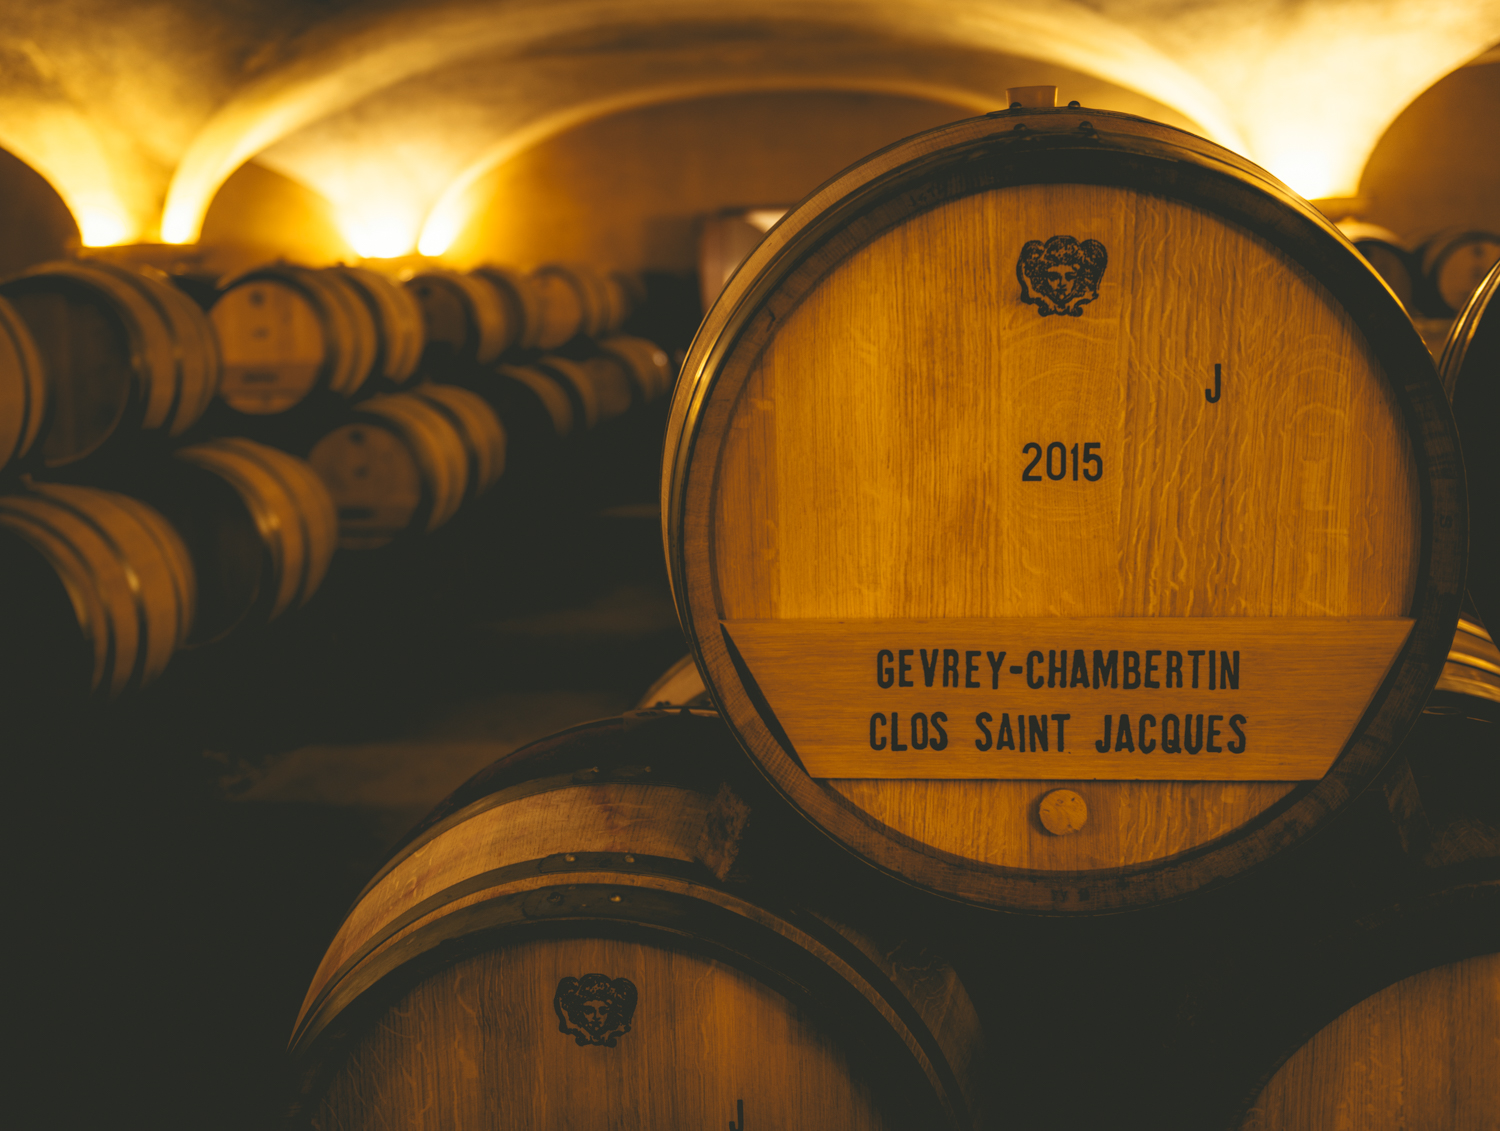 Burgundy : Cote de Beaune : Beaune : In the cellar at Louis Jadot